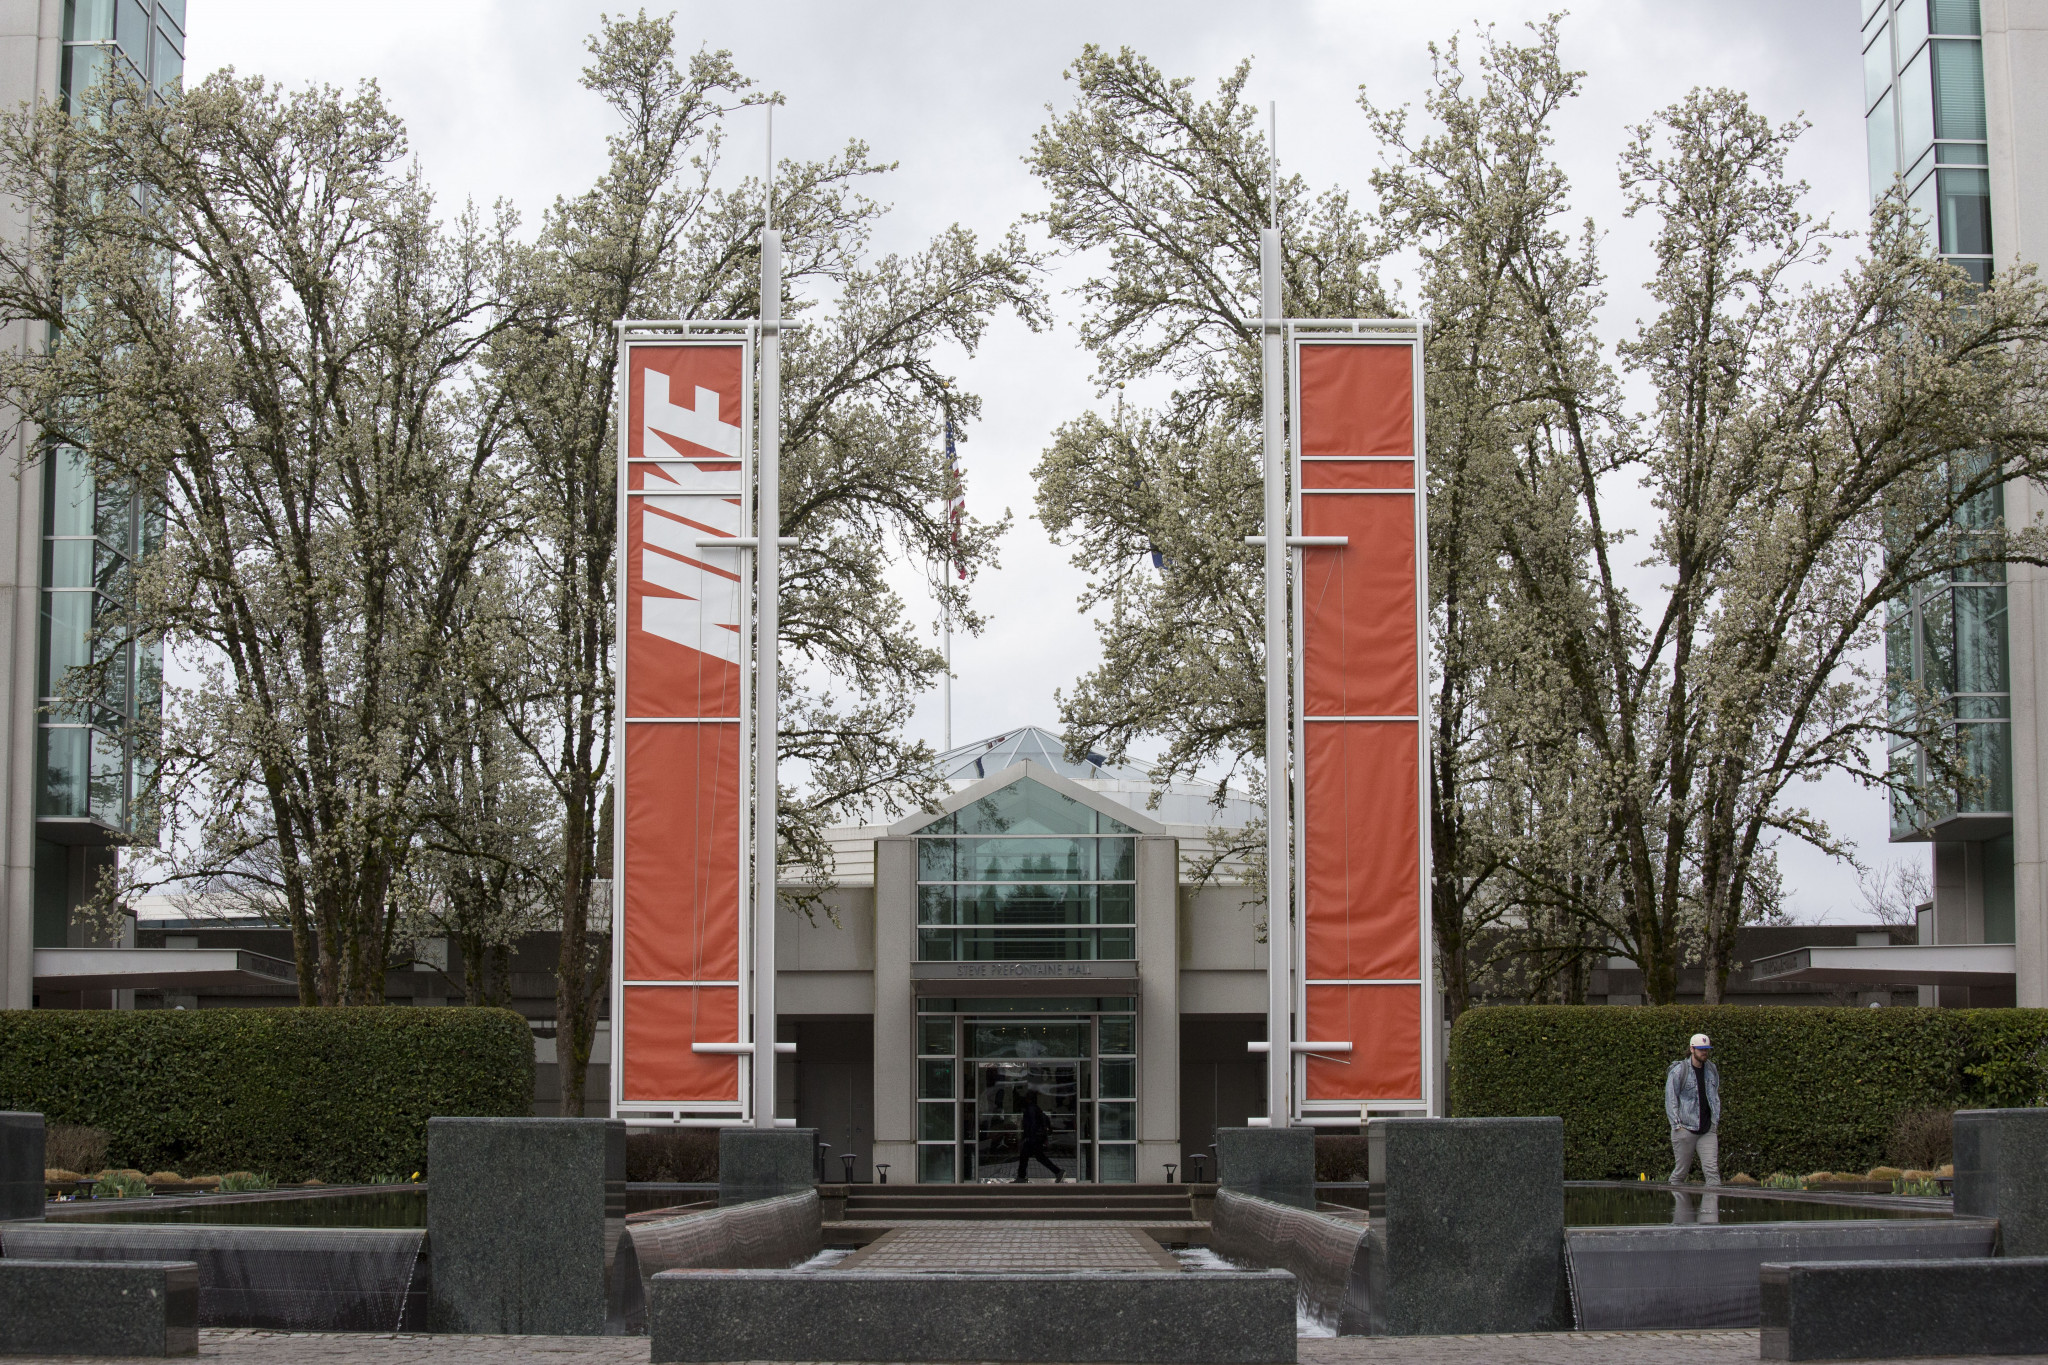 Nike increase number of planned layoffs at headquarters in Oregon